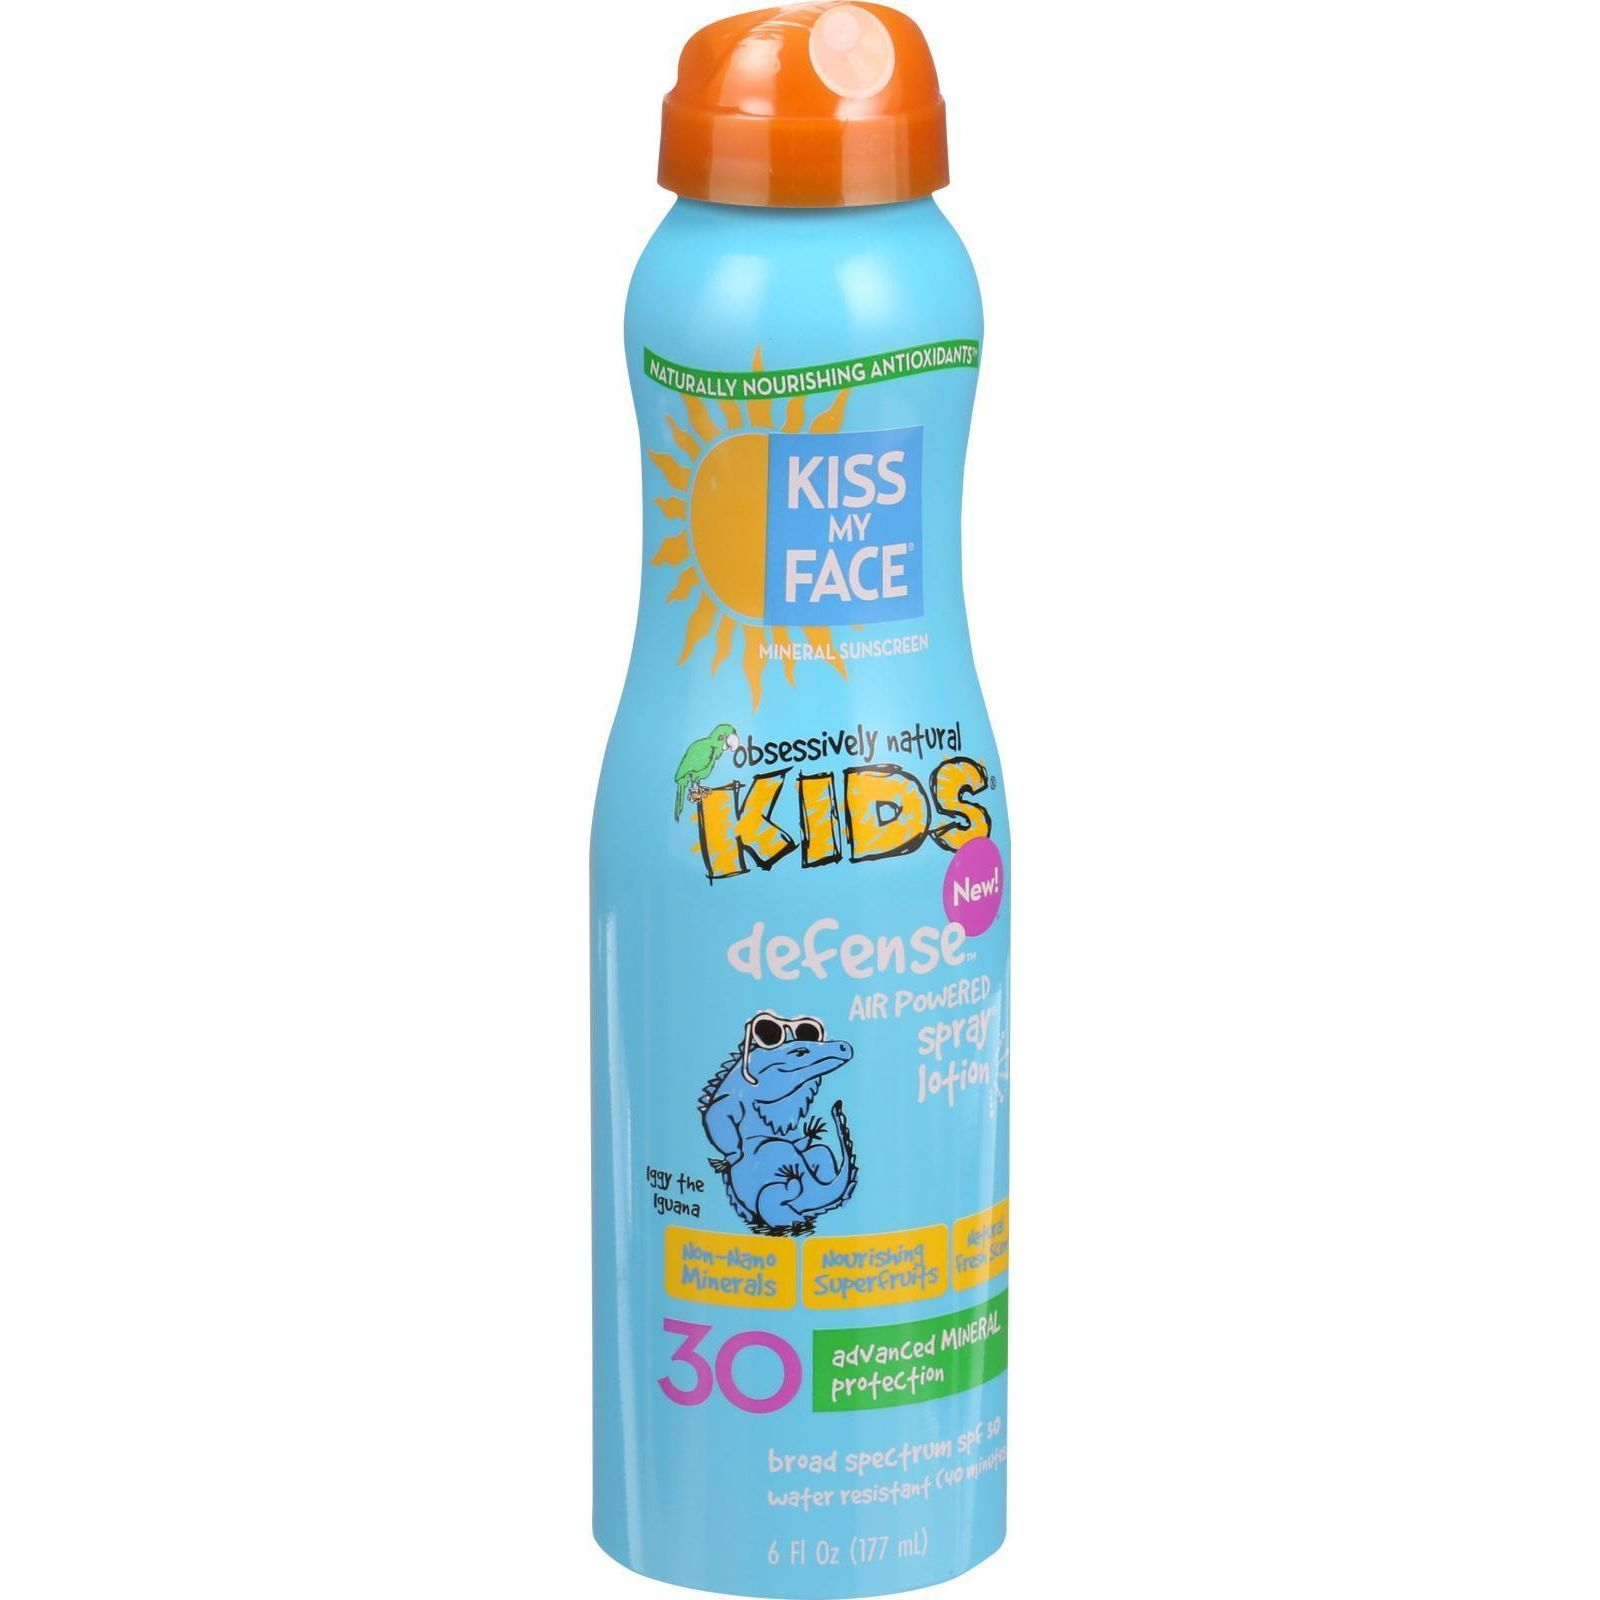 Kiss My Face Sunscreen - Mineral - Continuous Spray - Kids Defense - SPF 30 - 6 oz